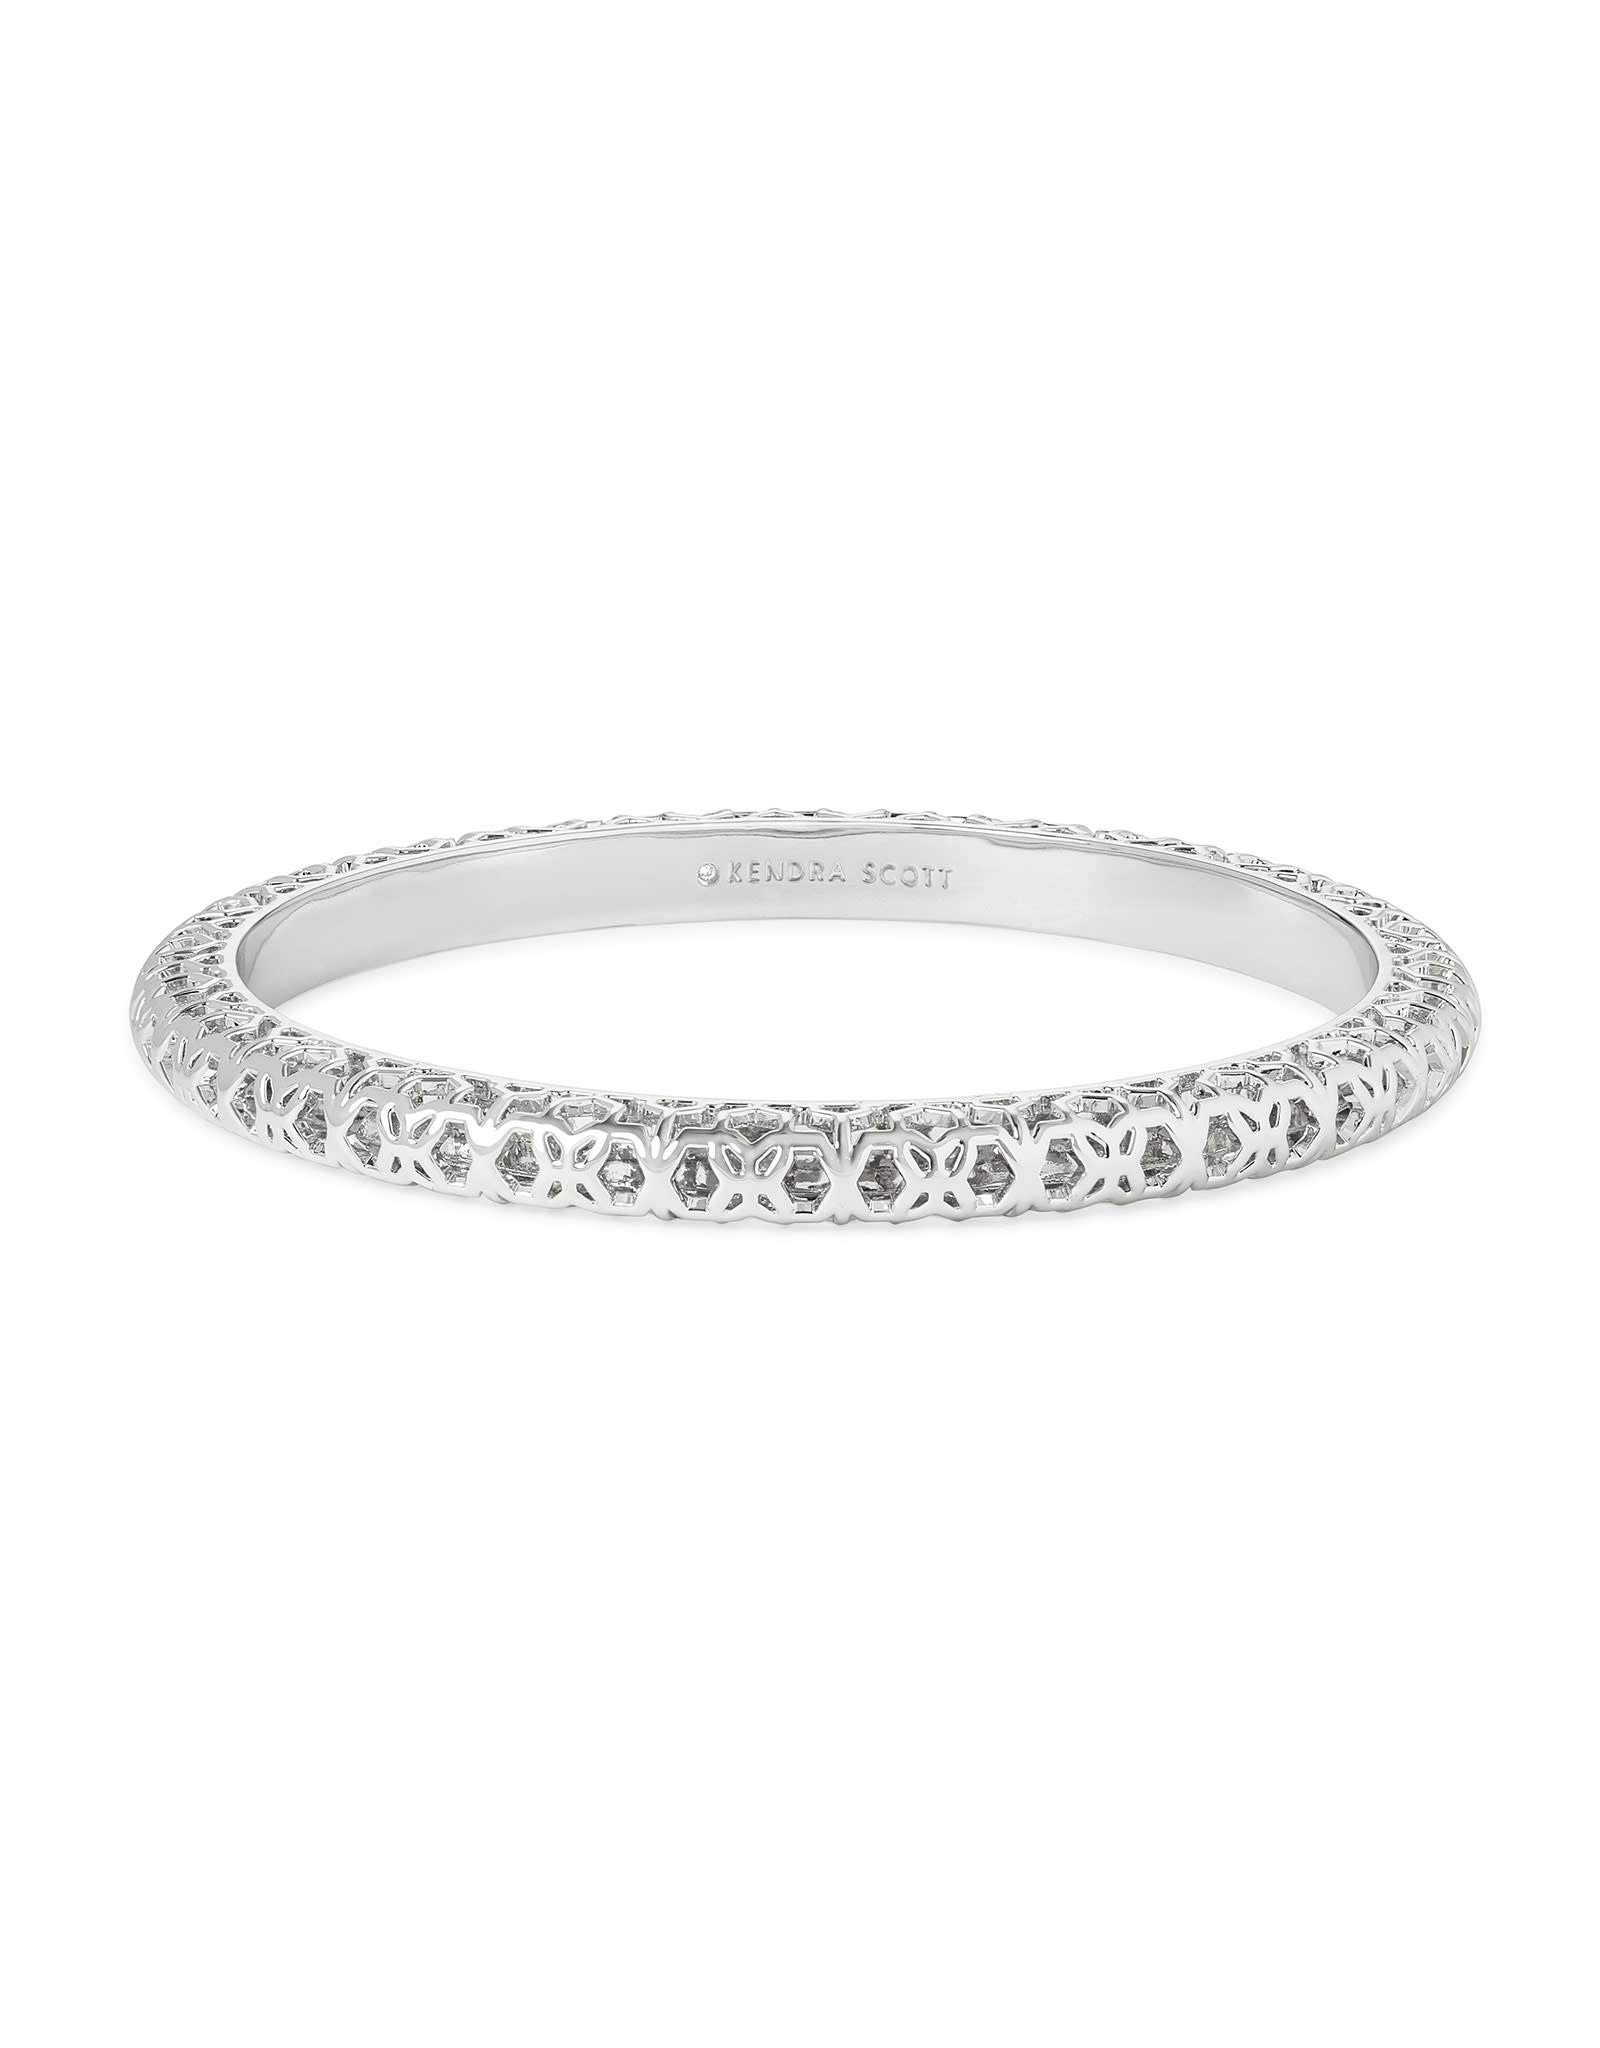 Kendra Scott Kendra Scott Maggie Bangle